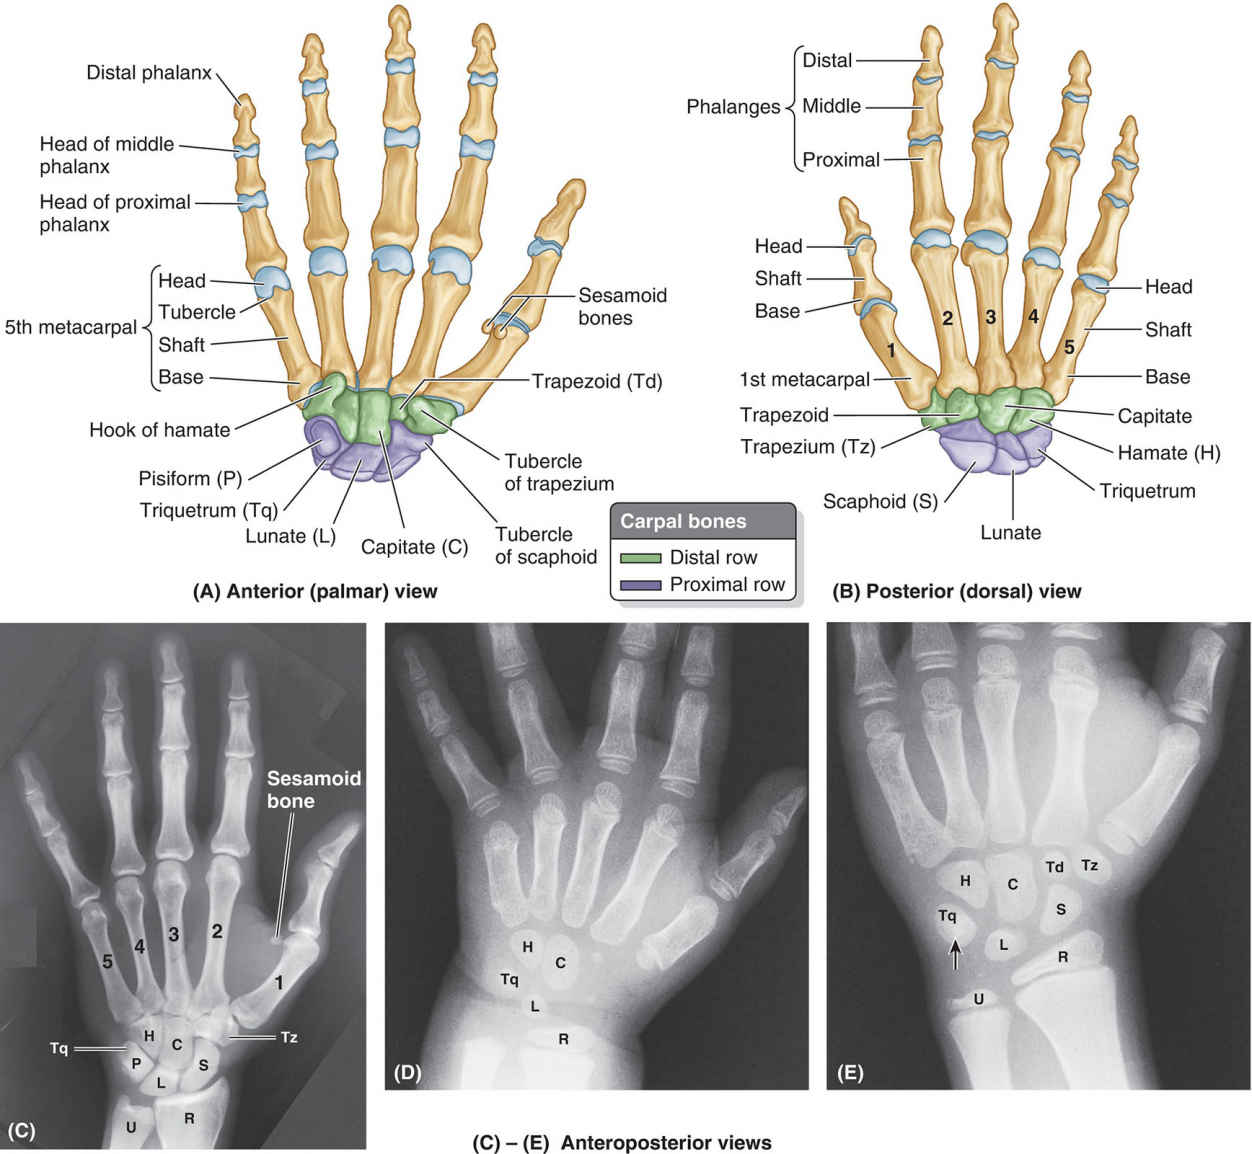 Bones Of Right Hand Anatomy And X-ray View